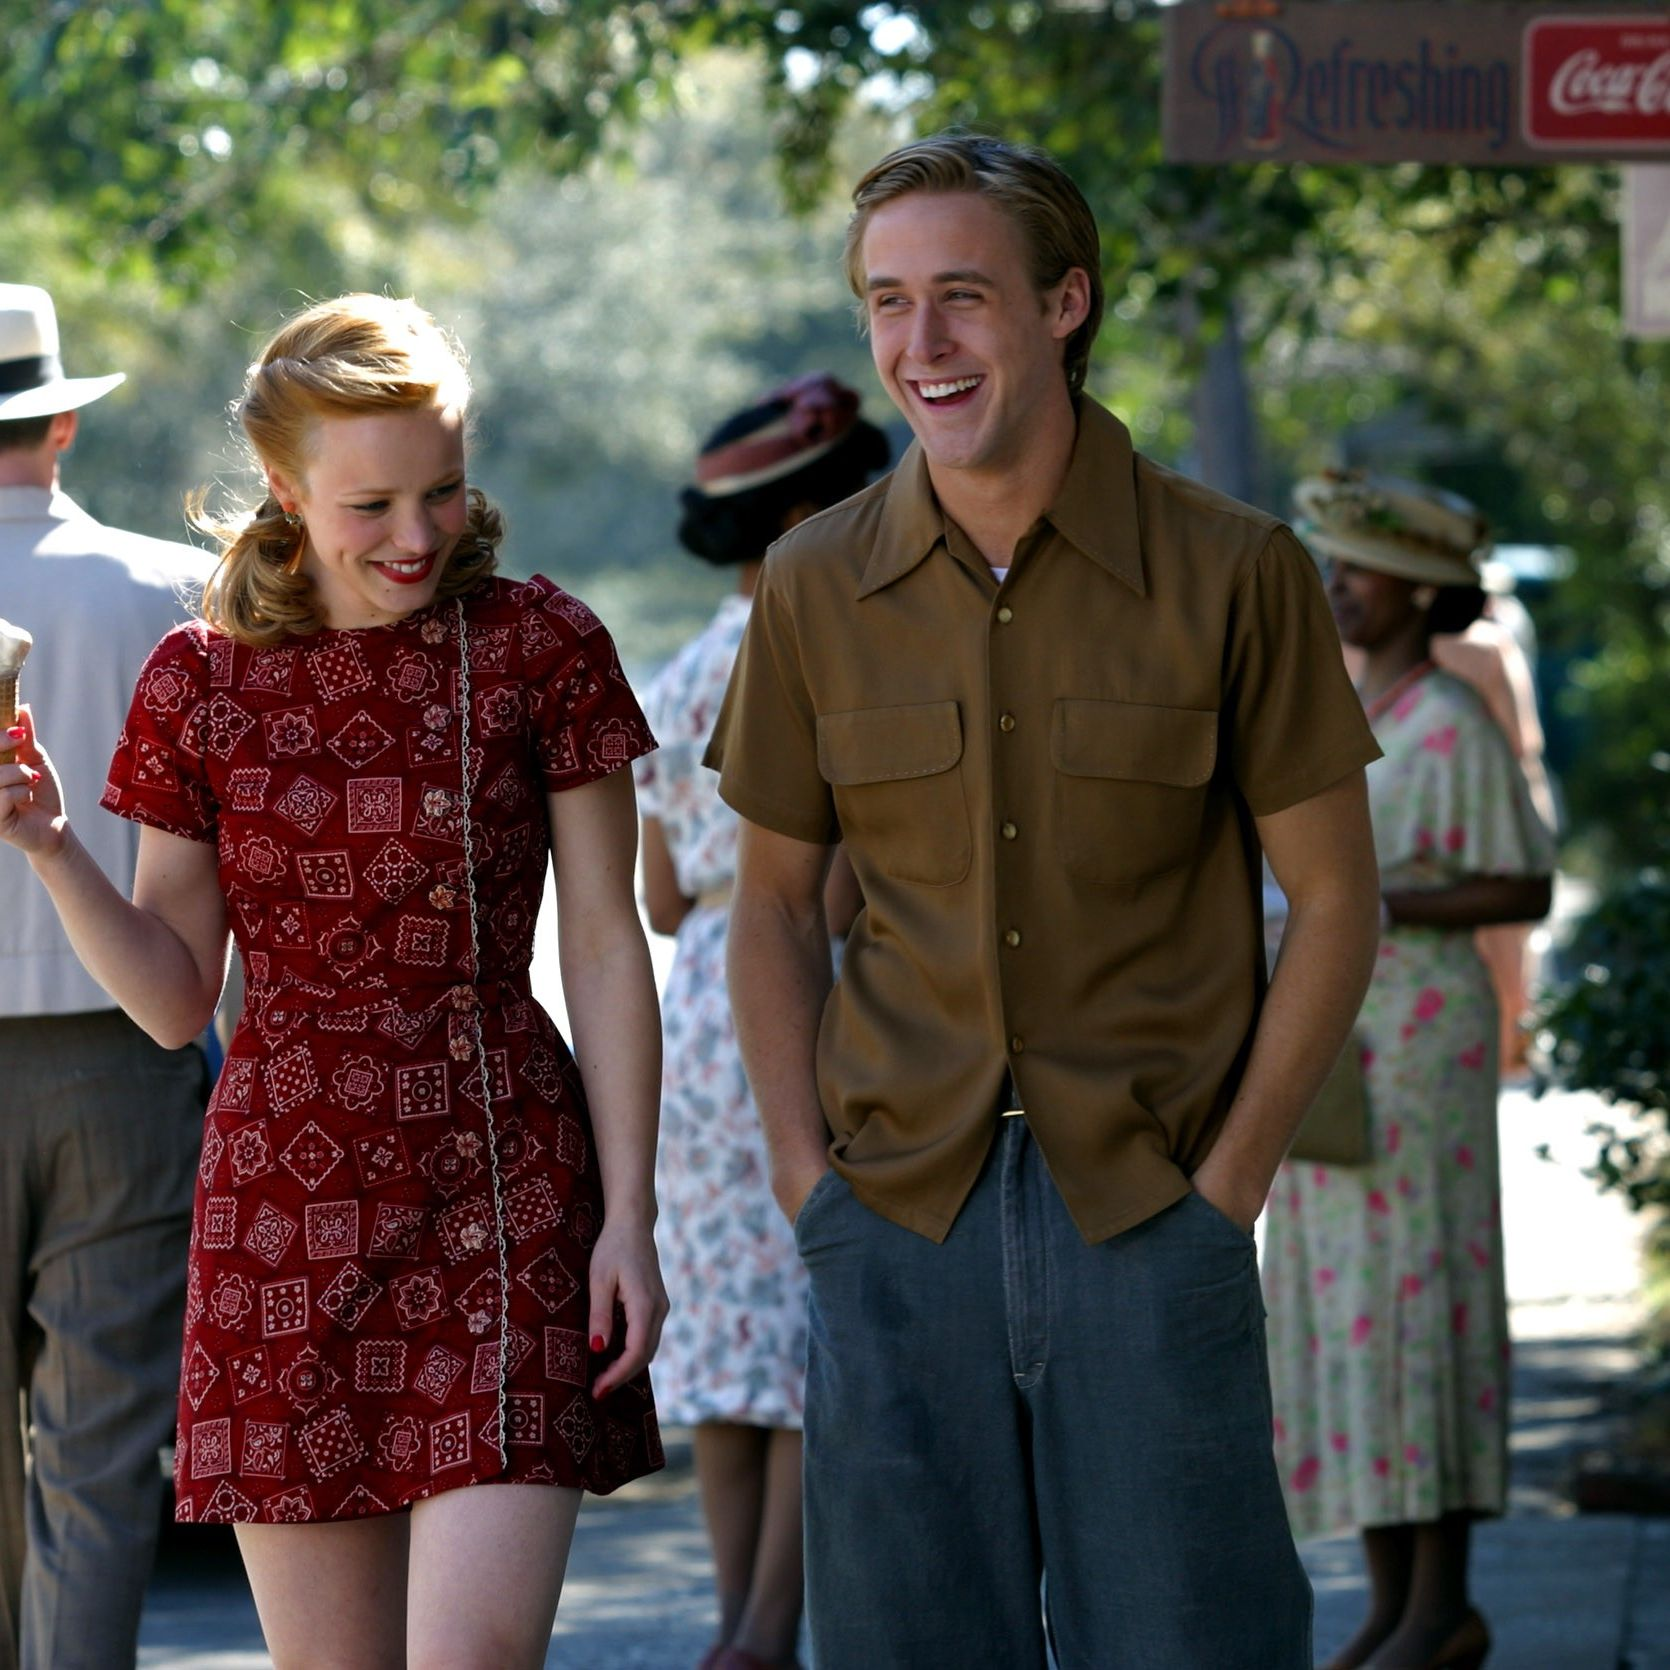 """<p>It wasn't over. It still isn't over. And honestly, it never will be—at least not for&nbsp&#x3B;us. Noah and Allie's is a love story for the ages. Not only does it hit you in&nbsp&#x3B;<em data-redactor-tag=""""em"""" data-verified=""""redactor"""">all</em><span class=""""redactor-invisible-space"""" data-verified=""""redactor"""" data-redactor-tag=""""span"""" data-redactor-class=""""redactor-invisible-space""""> the feels, from their too-cute-to-handle&nbsp&#x3B;summer fling to their heart-wrenching&nbsp&#x3B;final moments spent together, but <em data-redactor-tag=""""em"""" data-verified=""""redactor"""">The Notebook</em> also sparked the off-screen relationship between Rachel McAdams and Ryan Gosling (which we wish was still a thing, honestly).&nbsp&#x3B;</span></p>"""